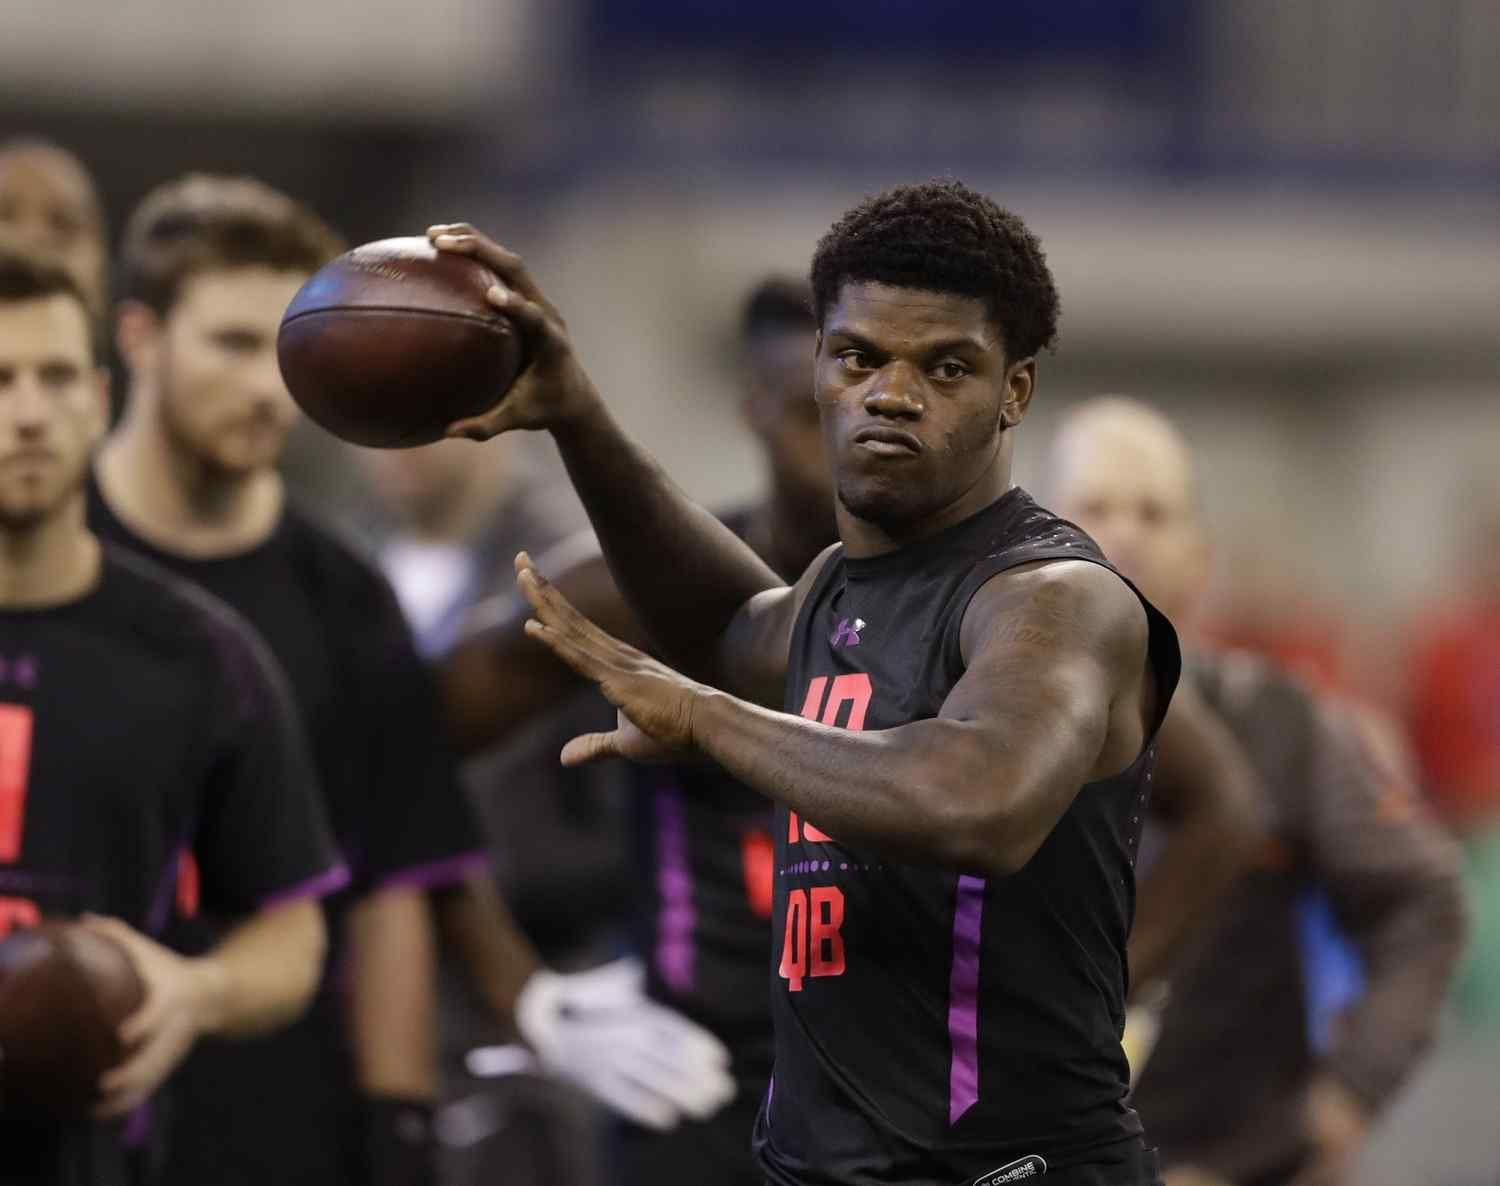 Browns could pull a surprise by trading down for QB Lamar